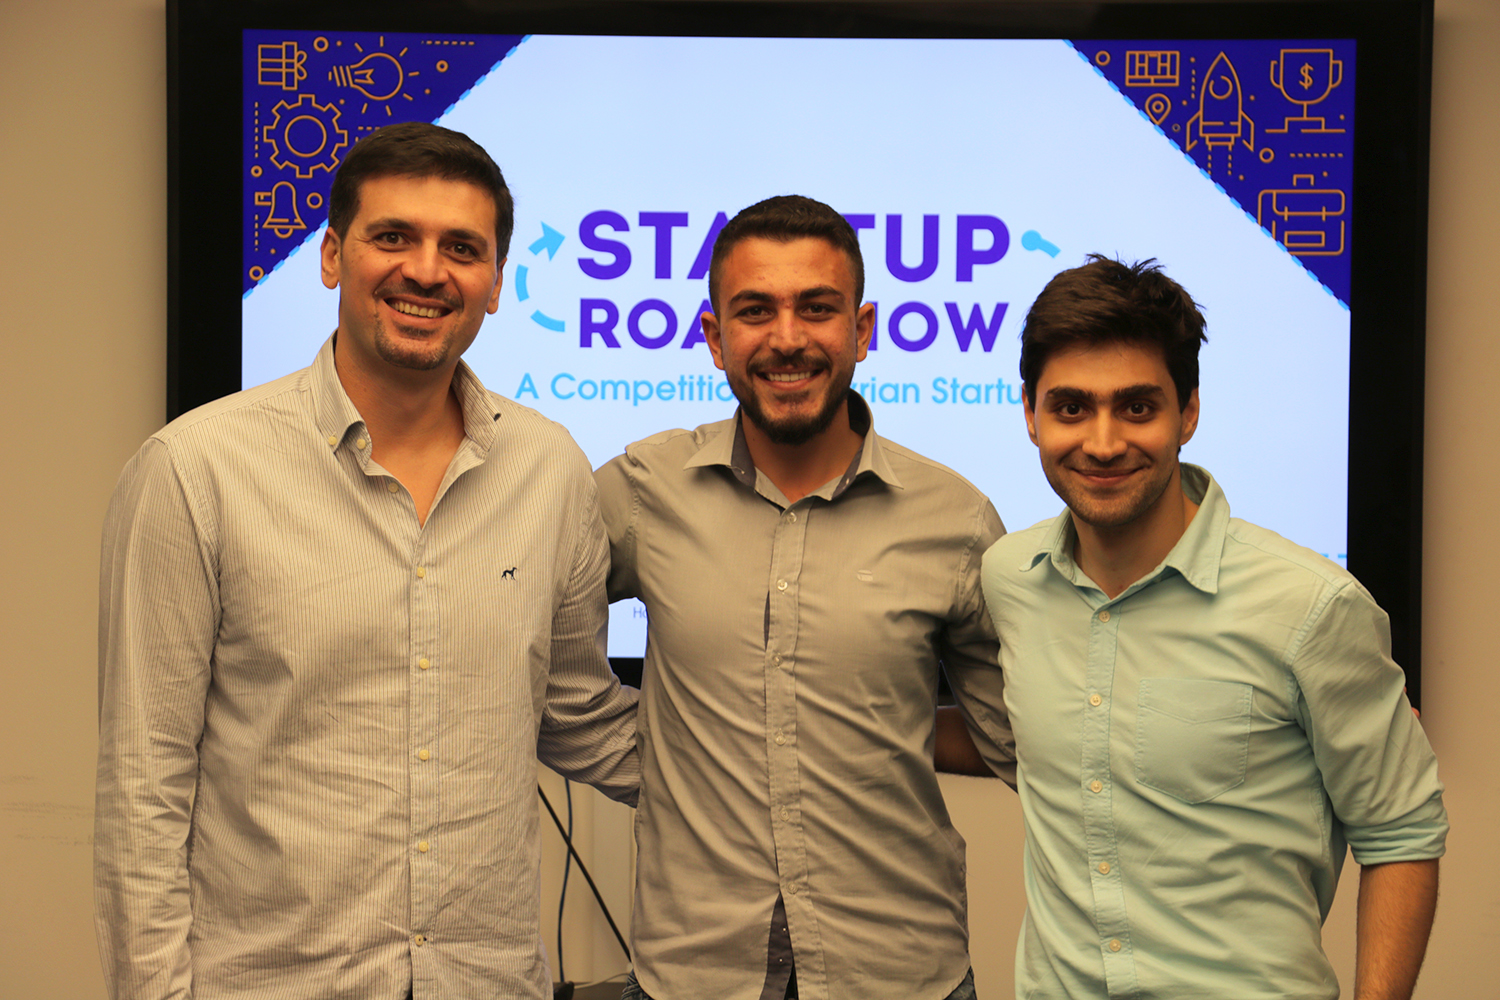 E-Commerce Startup Sharqi Shop and HealthTech Fadfed Championed the Startup Roadshow in Amman